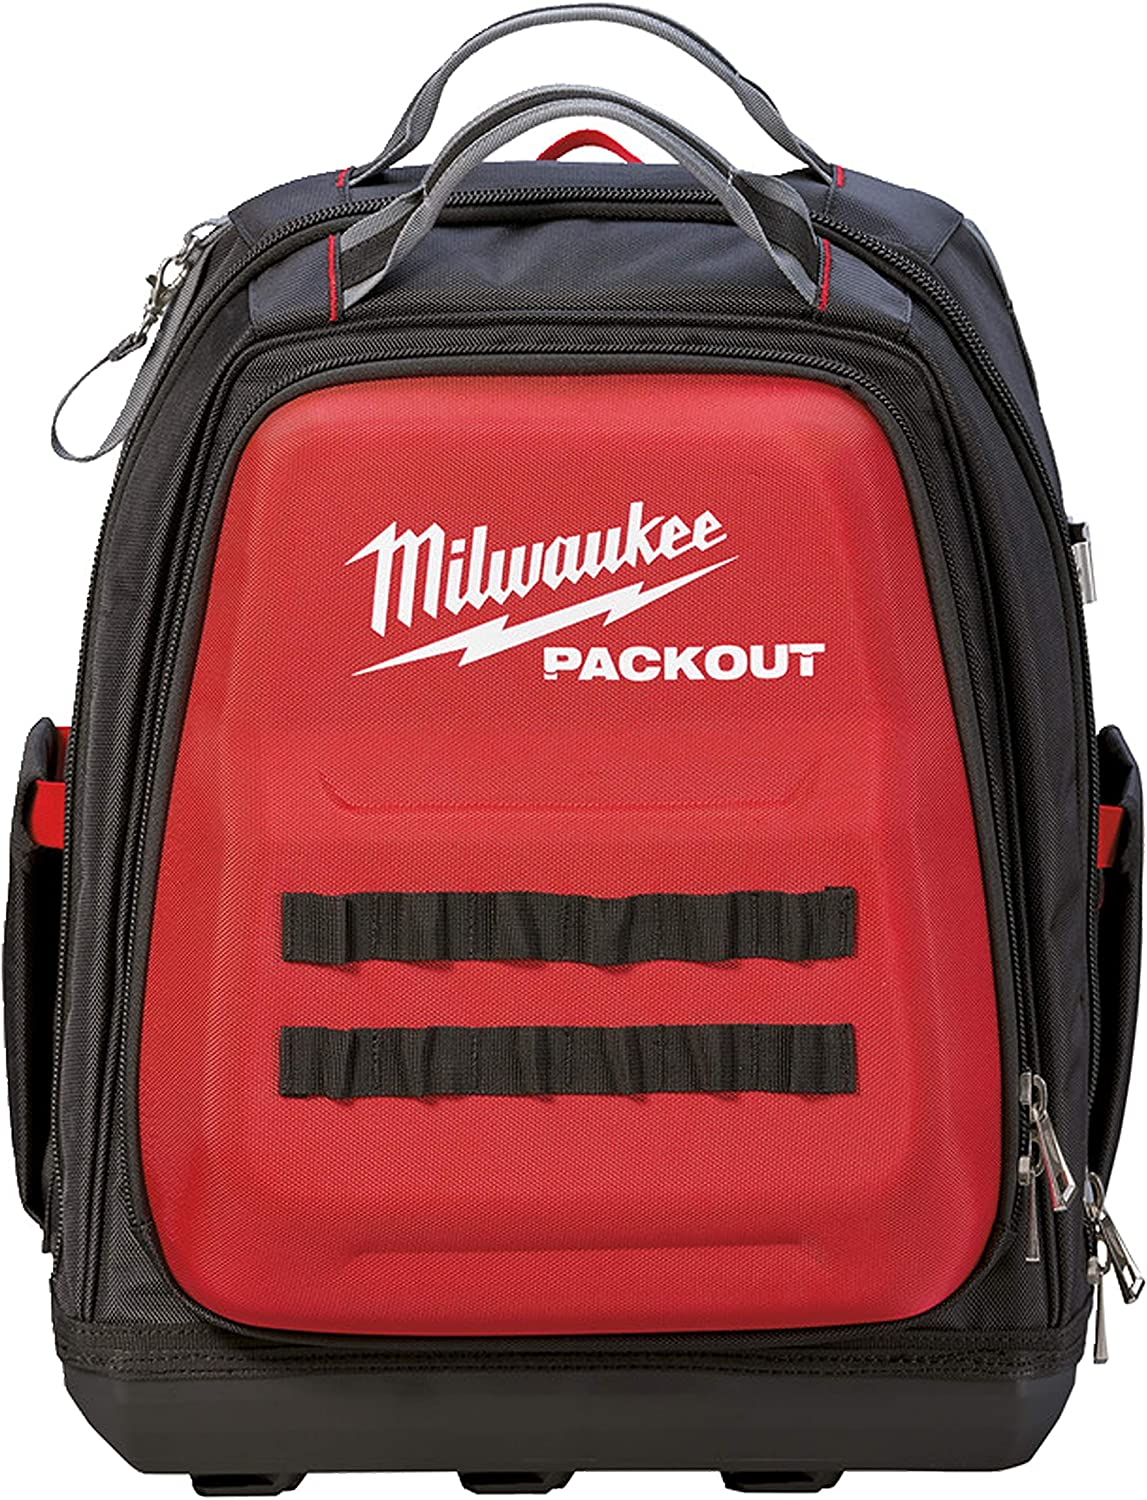 Milwaukee 932471131 PACKOUT Backpack, Red